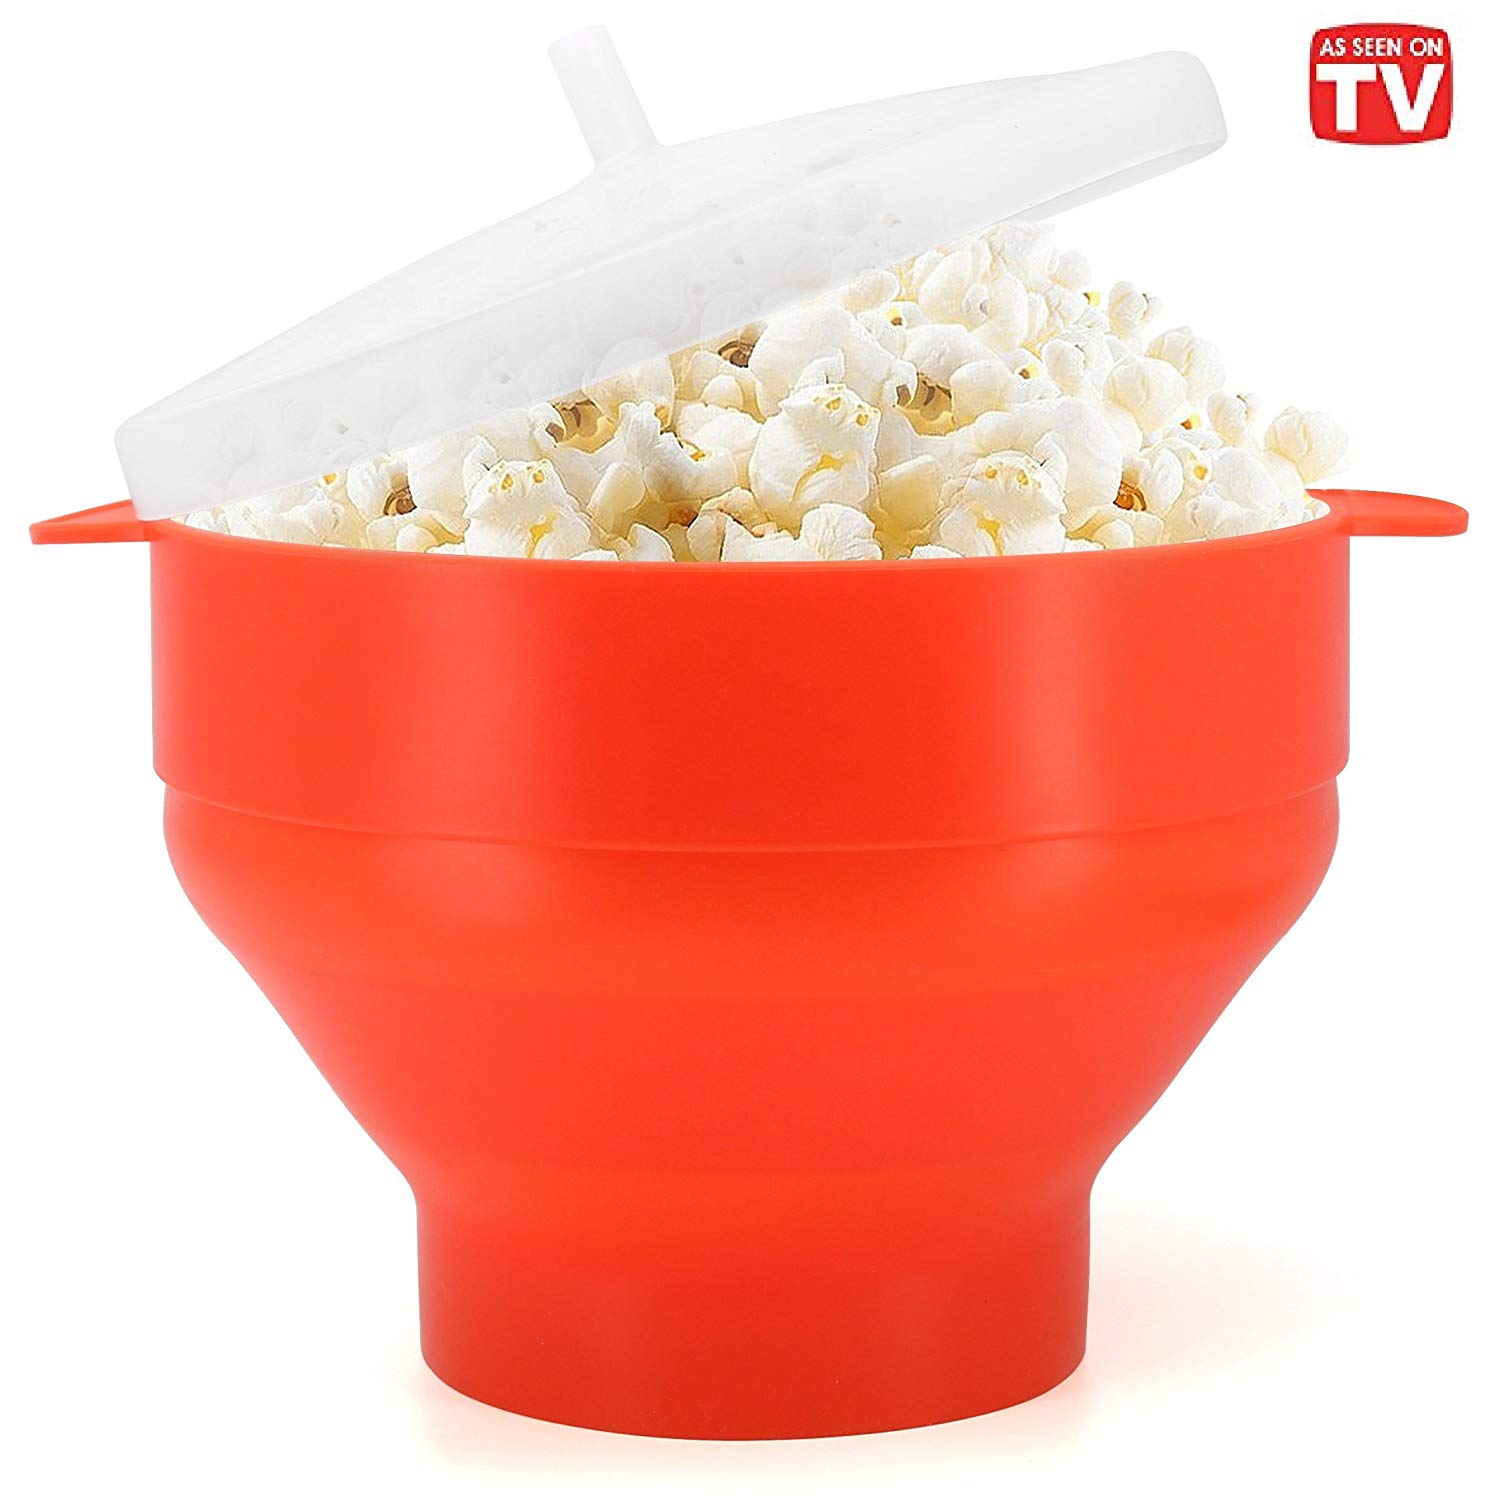 Microwave Popcorn Popper, BPA Free Silicone Hot Air Microwavable Popcorn Maker Bowl